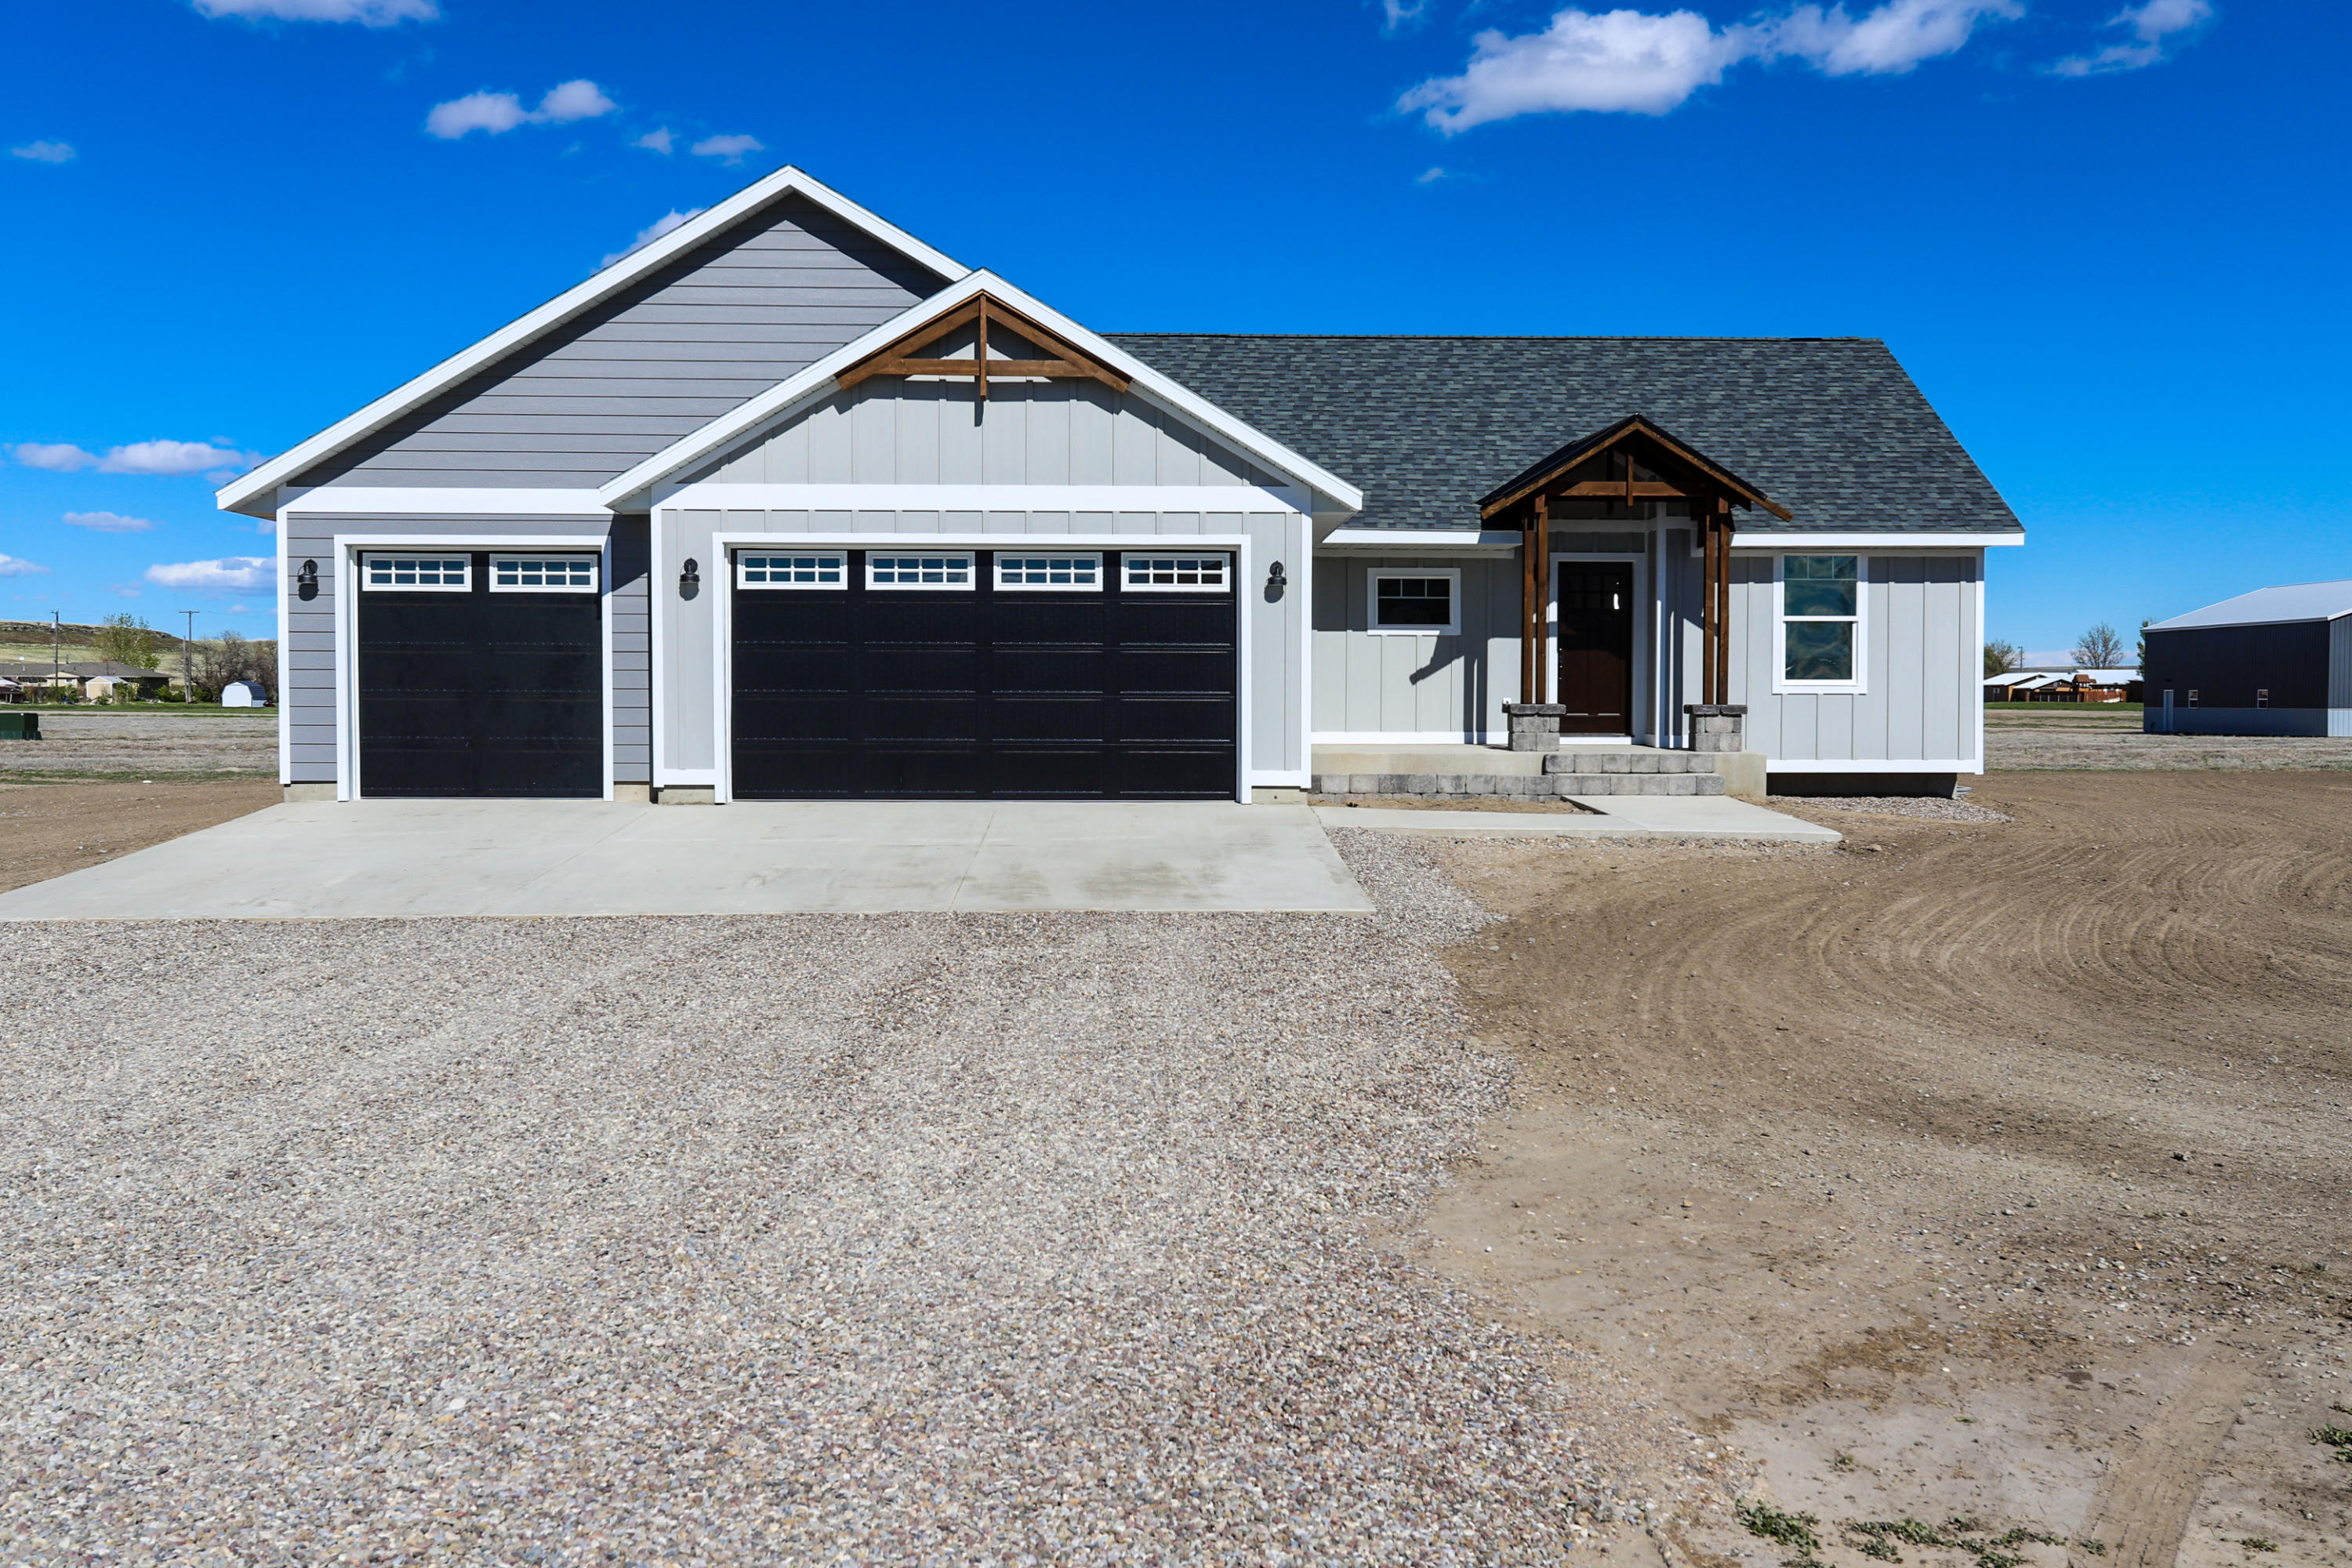 SWEET HOME MONTANA in this BRAND NEW BUILD nestled in the quaint town of ULM just a short drive from Great Falls! Situated on 2 acres, this gorgeous new home features a 3 car attached garage,  true master suite, MAIN FLOOR LAUNDRY, 3 bedrooms & 2 bathrooms on the main level, 2 bedrooms & 1 bathroom below grade with a large living room and 9 ft ceilings! The kitchen is ordained by high end finishes, granite counter tops, and the open floor plan is accentuated by a gas fireplace.   It also features a sprinkler system, pressure dosed septic system, two 1500 gal cisterns, and 2 community wells for irrigation! it is all about the details.  Listed by Melissa Dascoulias.